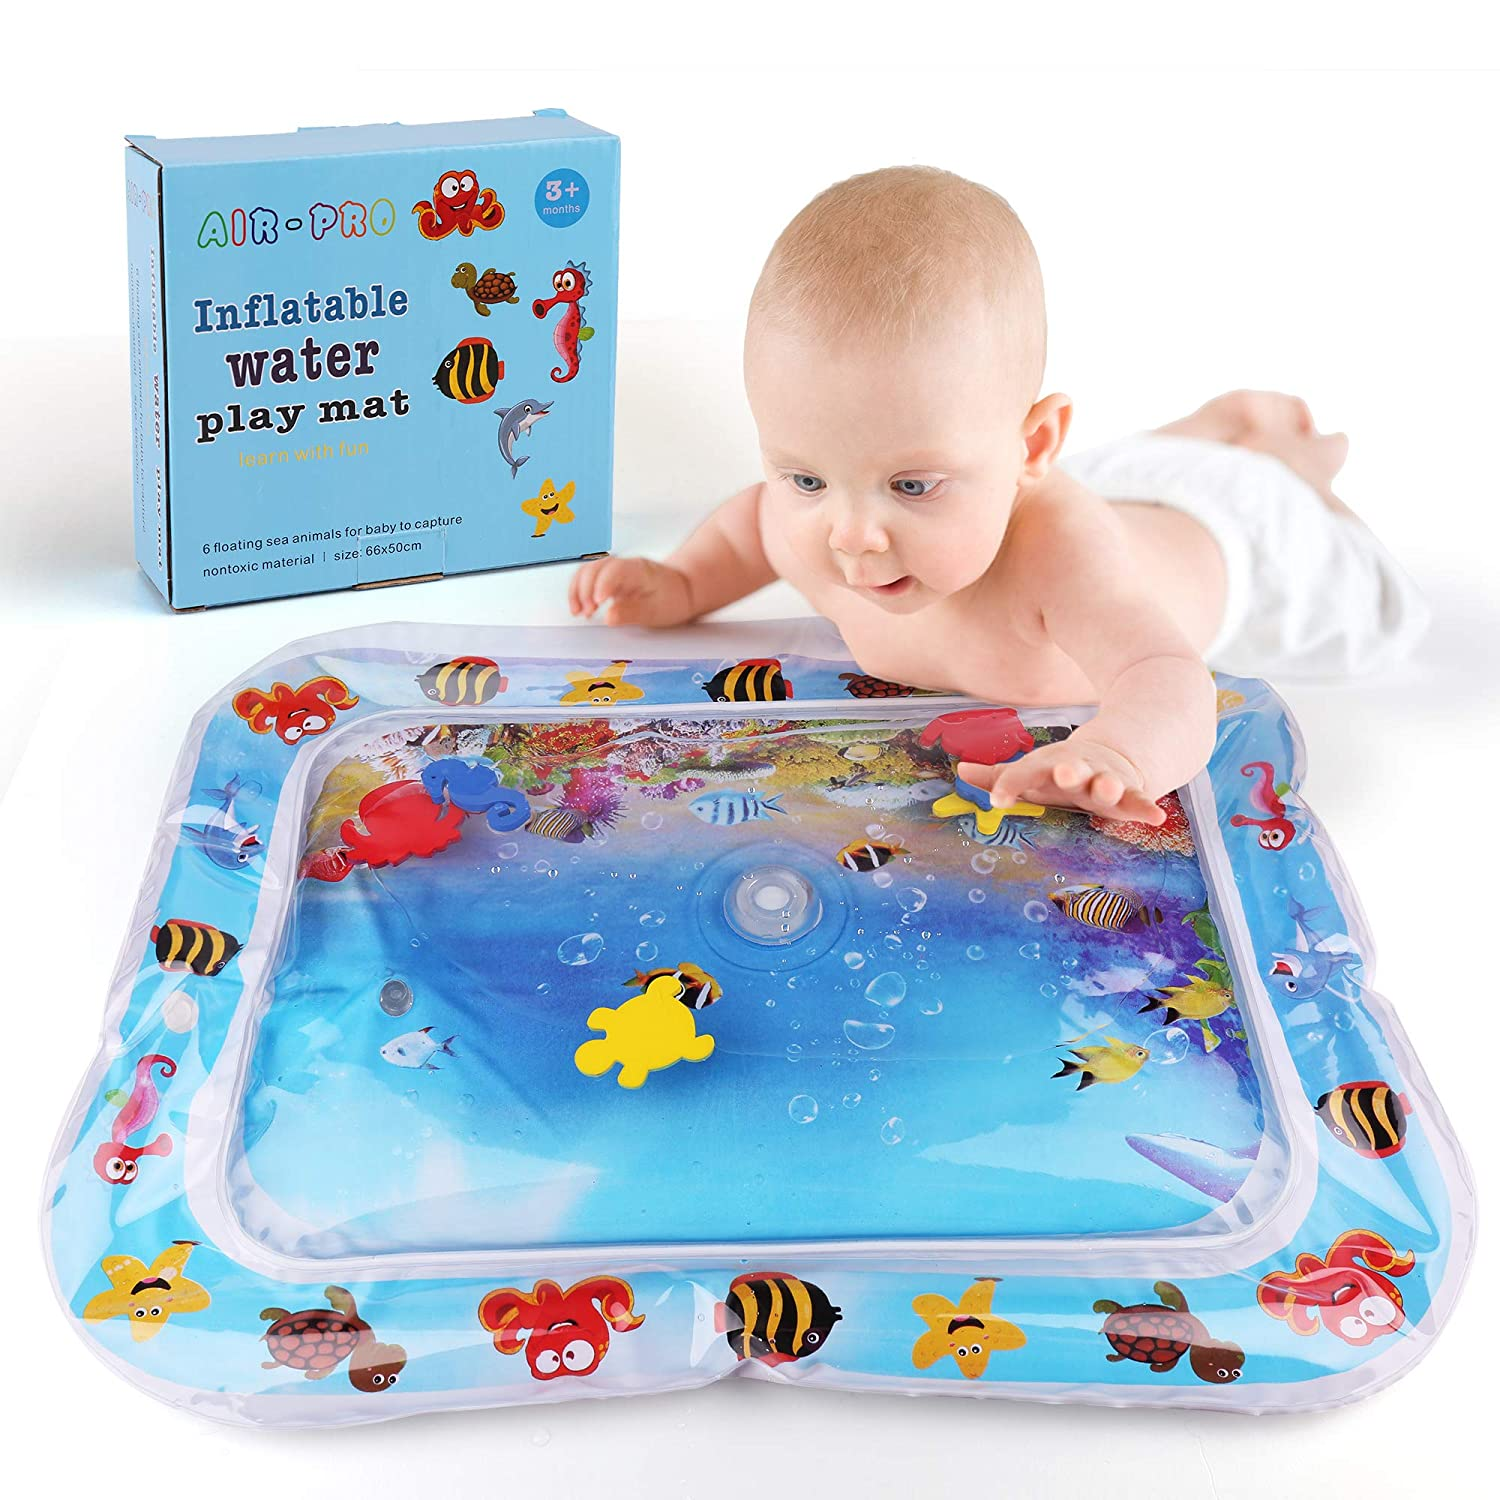 Inflatable Tummy Time Baby Water Play Mat for Baby, Fill N Fun Water Play Mat for Fun, Indoor & Outdoor Pad for Infants & Children, Leak proof, Activity Play Center Promotes Visual Stimulation 26'x20' Activity Play Center Promotes Visual Stimulation 26x20